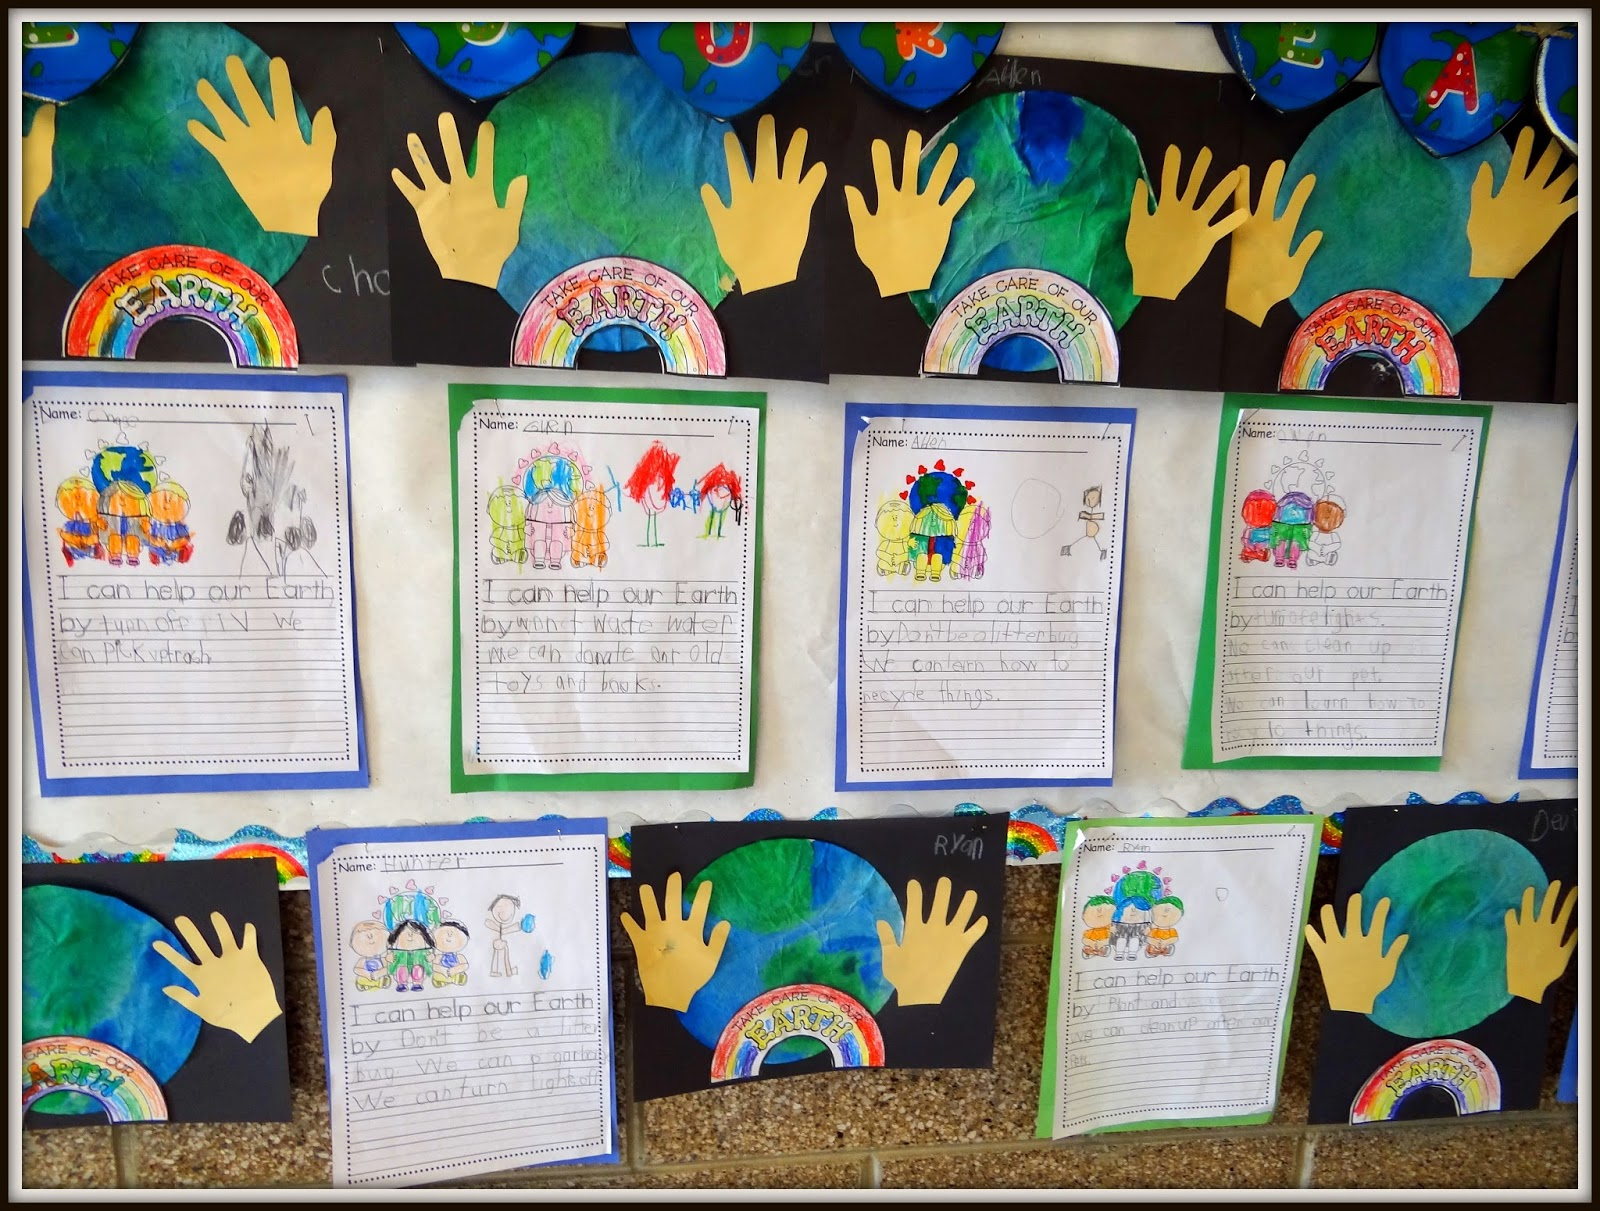 Patties Classroom Earth Day Activities